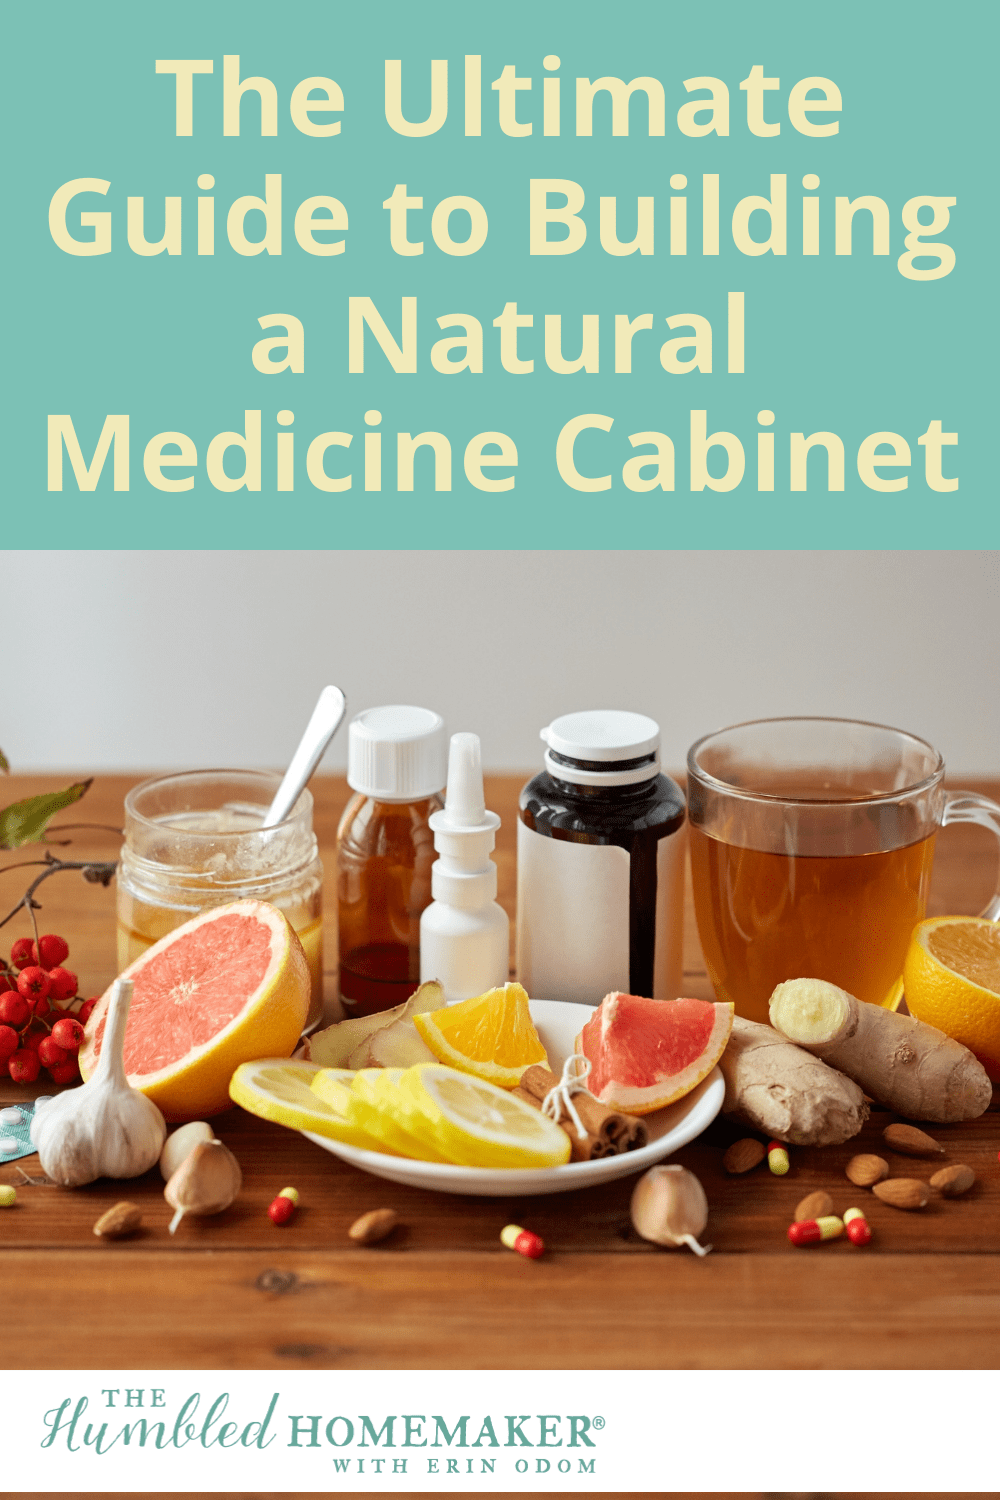 This comprehensive guide to building a natural medicine cabinet will give you all the tools you need to stock your own natural medicine cabinet!